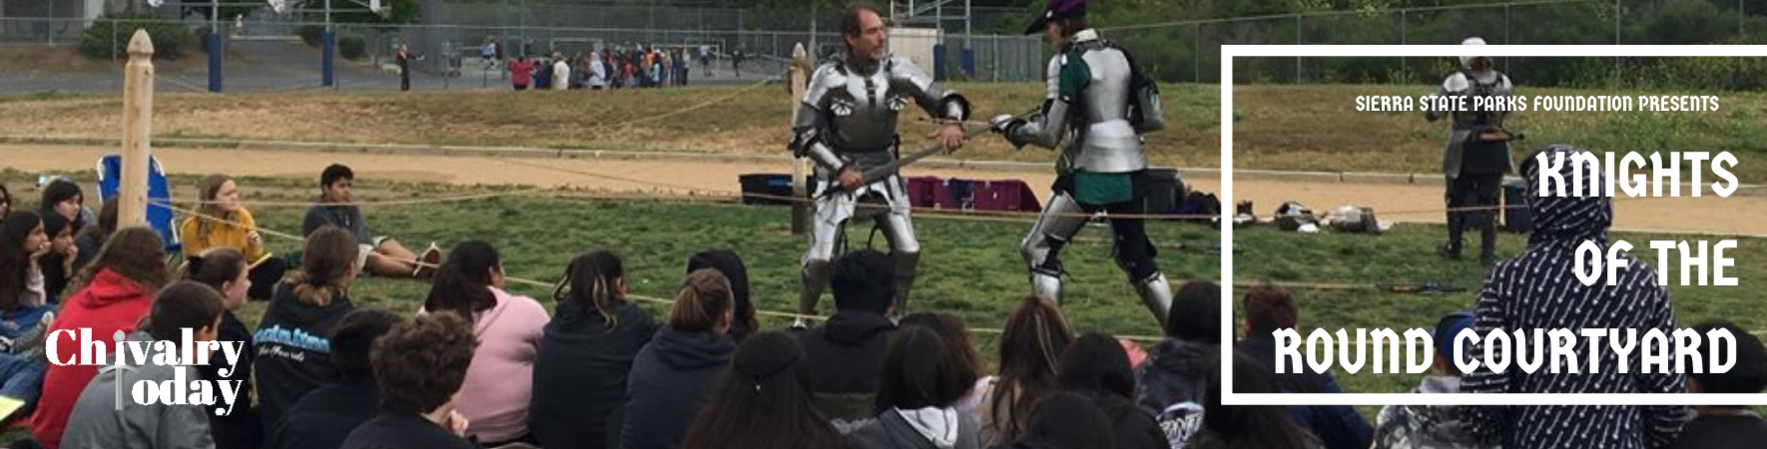 Knights of the Round Courtyard 2020 image